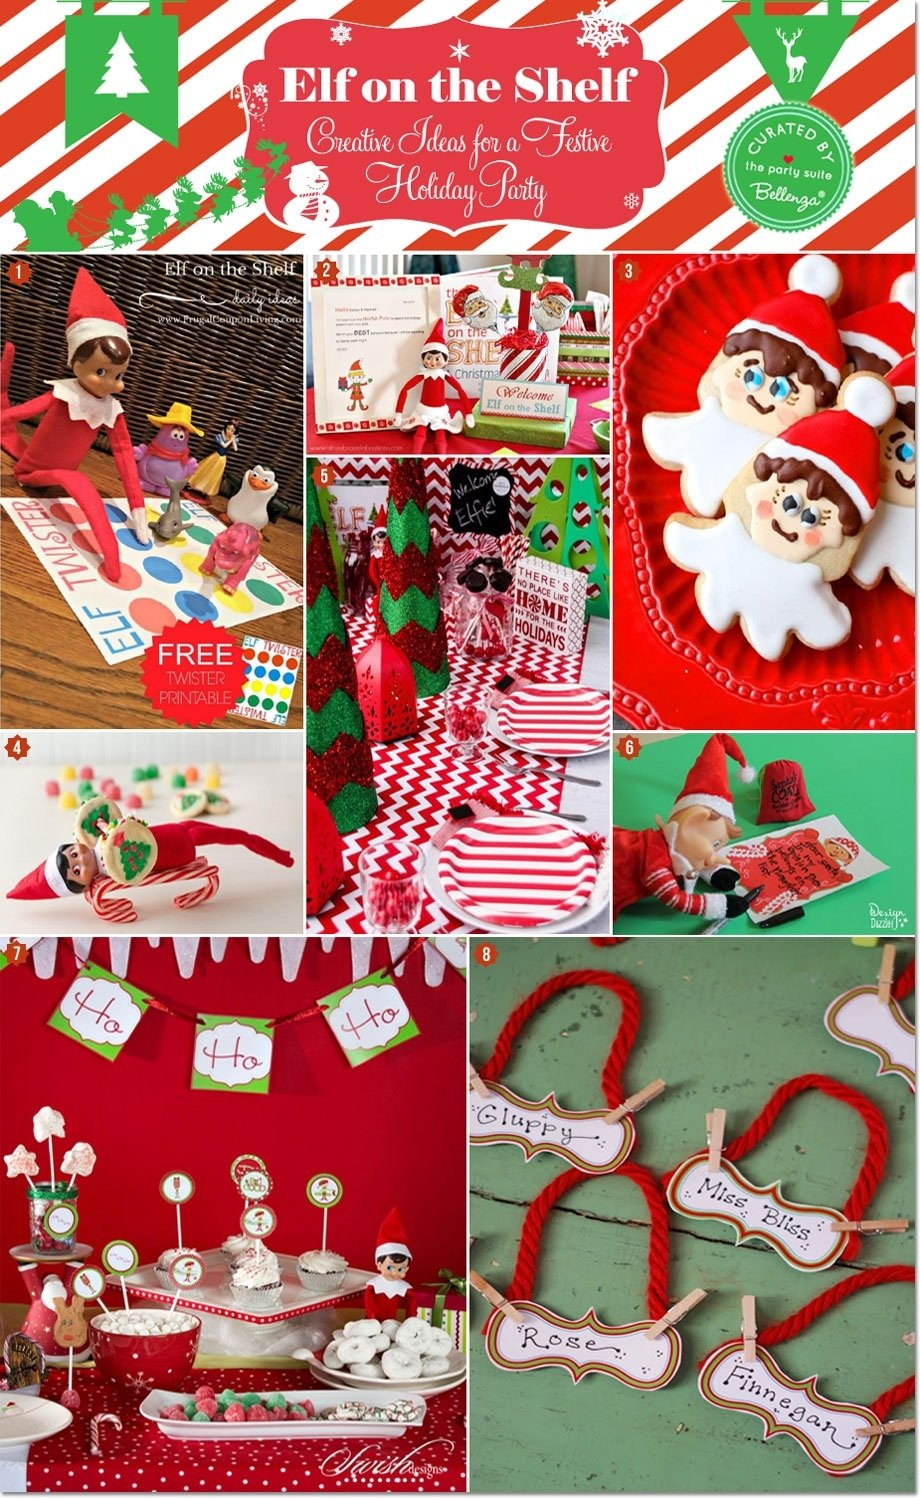 elf on the shelf party theme: ideas made easy for you!